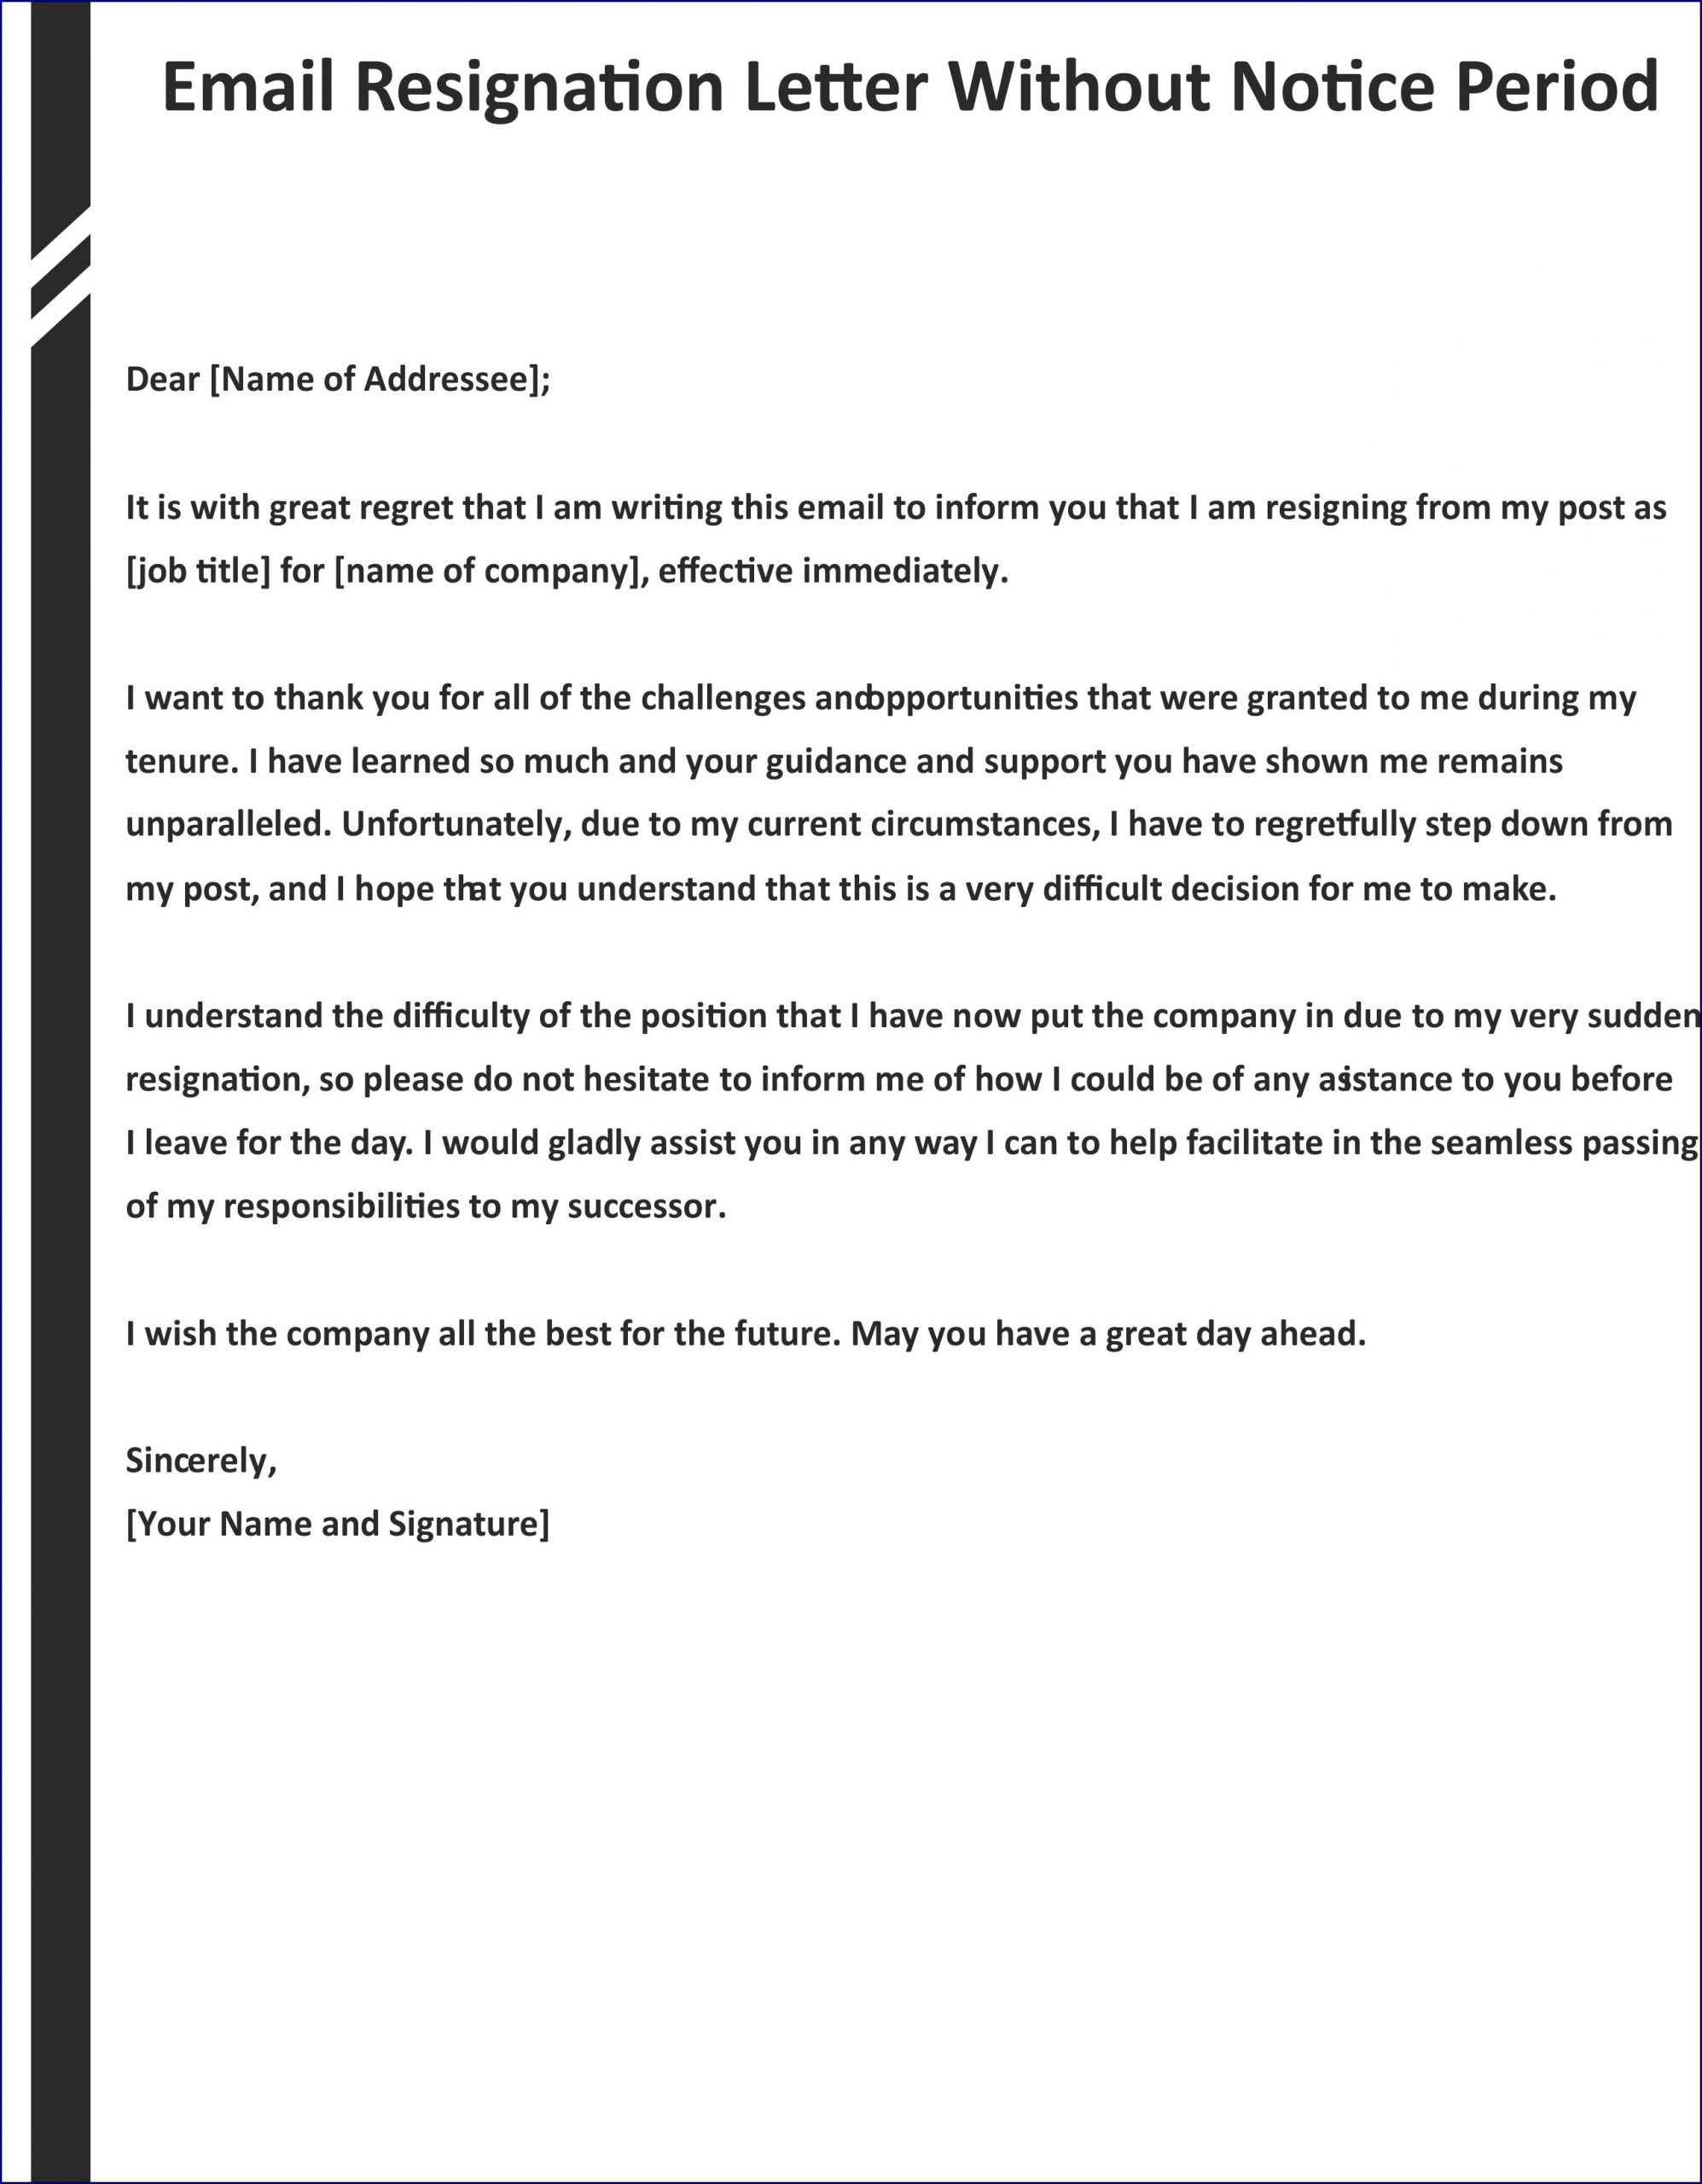 Sample of Resignation Letter Template Without Notice